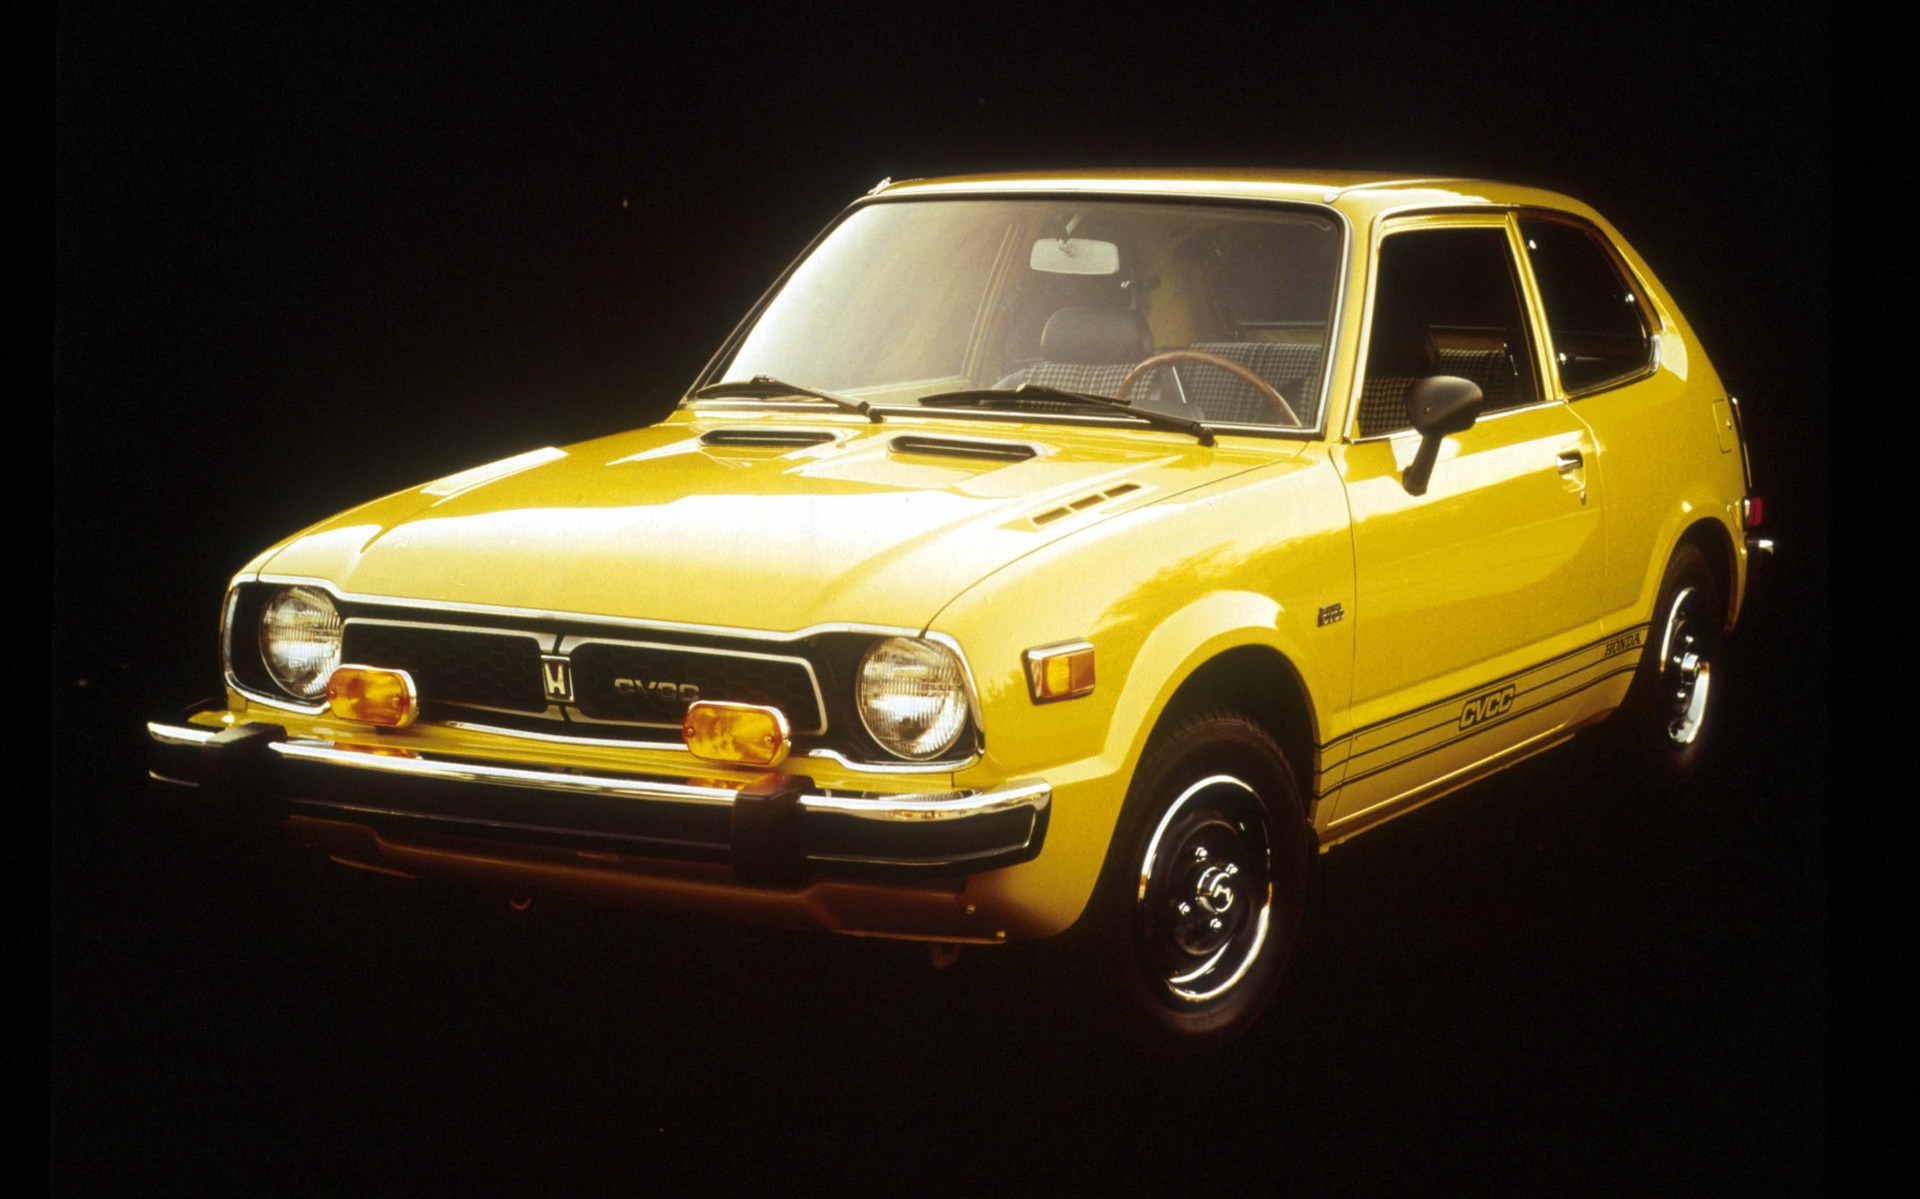 <p>1974 Honda Civic</p>